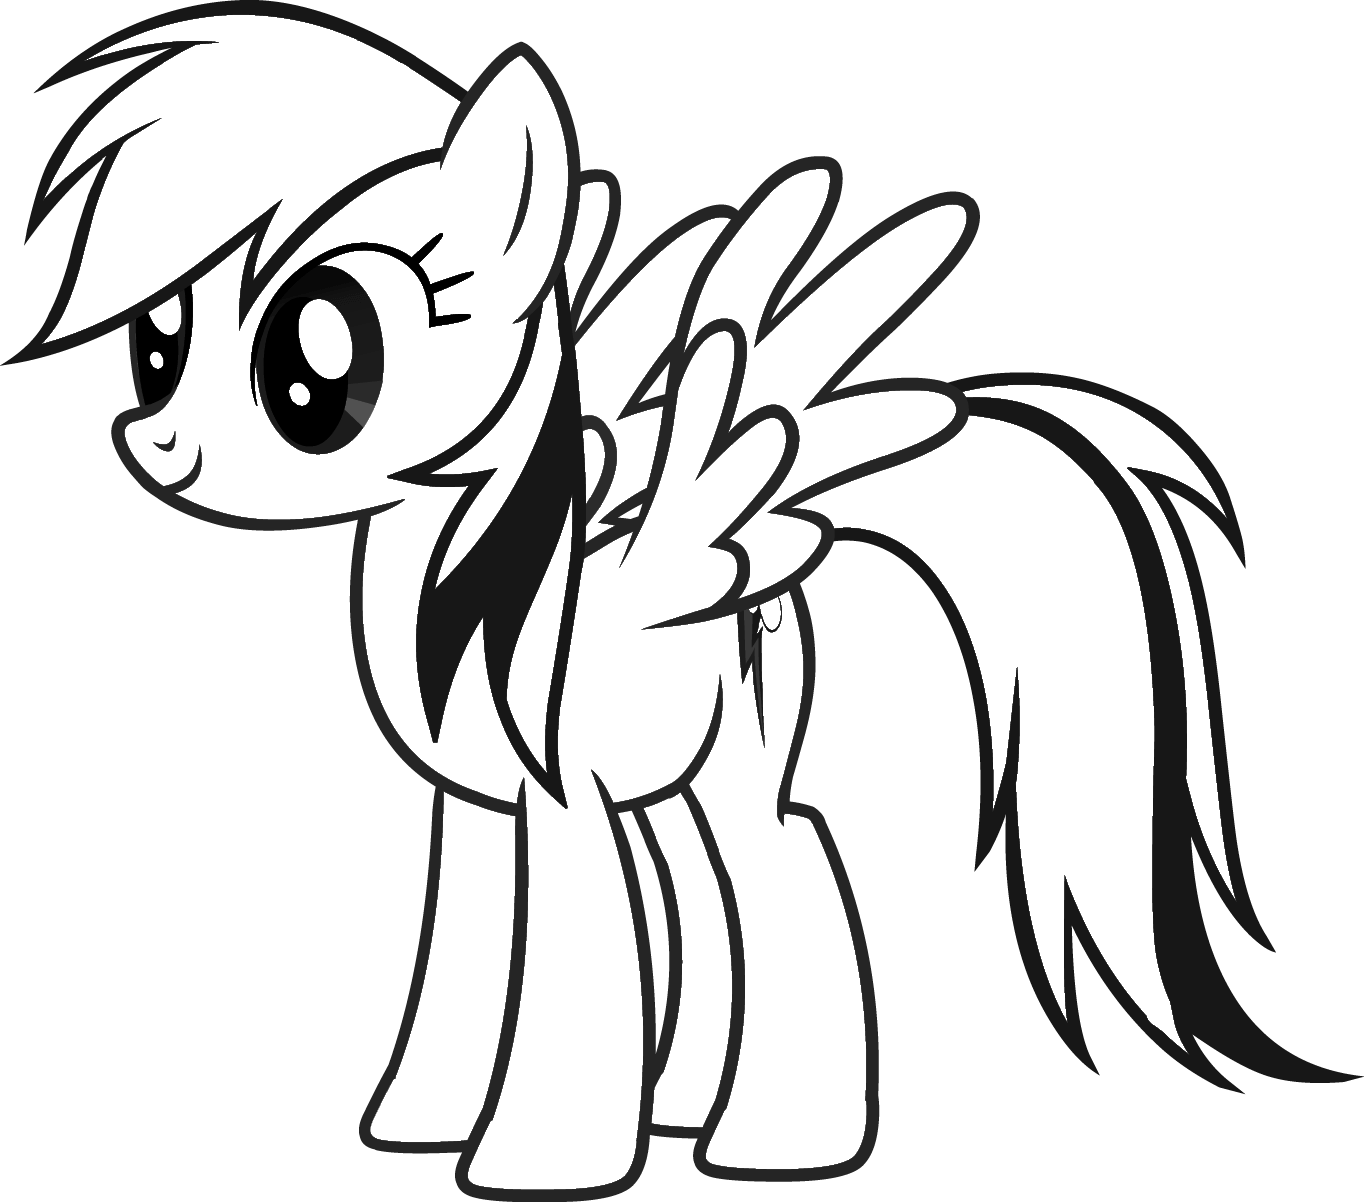 Mlp coloring pages dj pon 3 - My Little Pony Coloring Pages Free My Little Pony Rainbow Dash Coloring Page